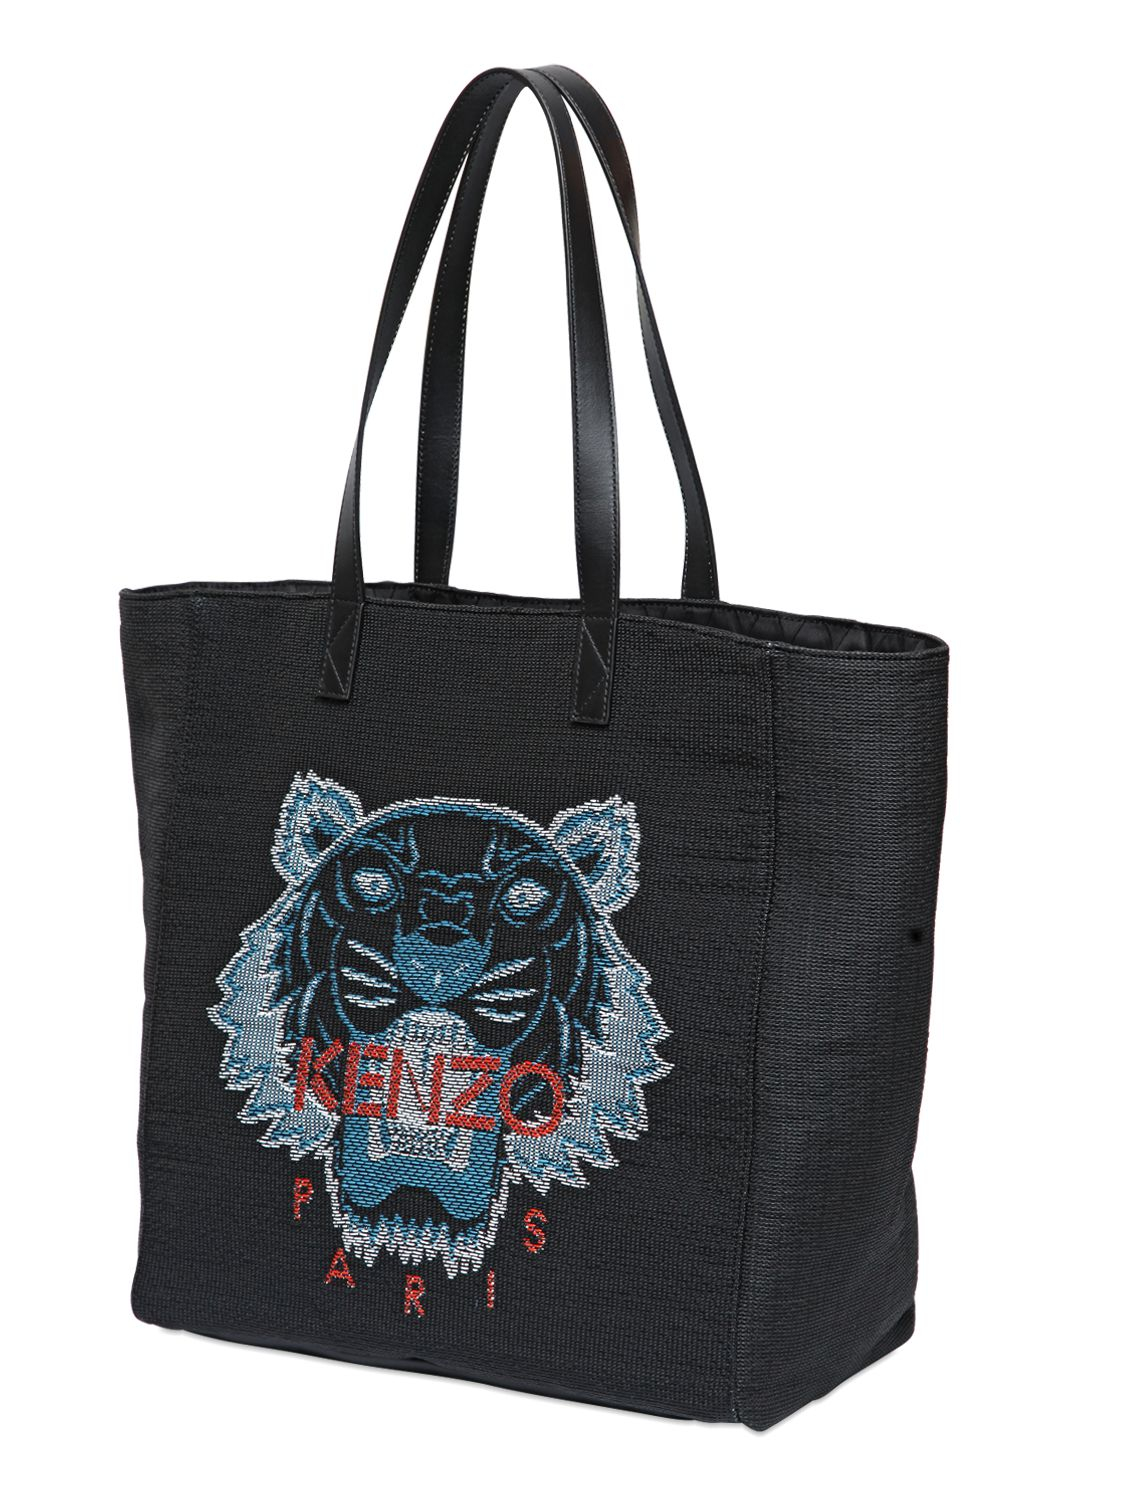 Kenzo Tiger Woven Straw Amp Leather Tote Bag In Black Lyst